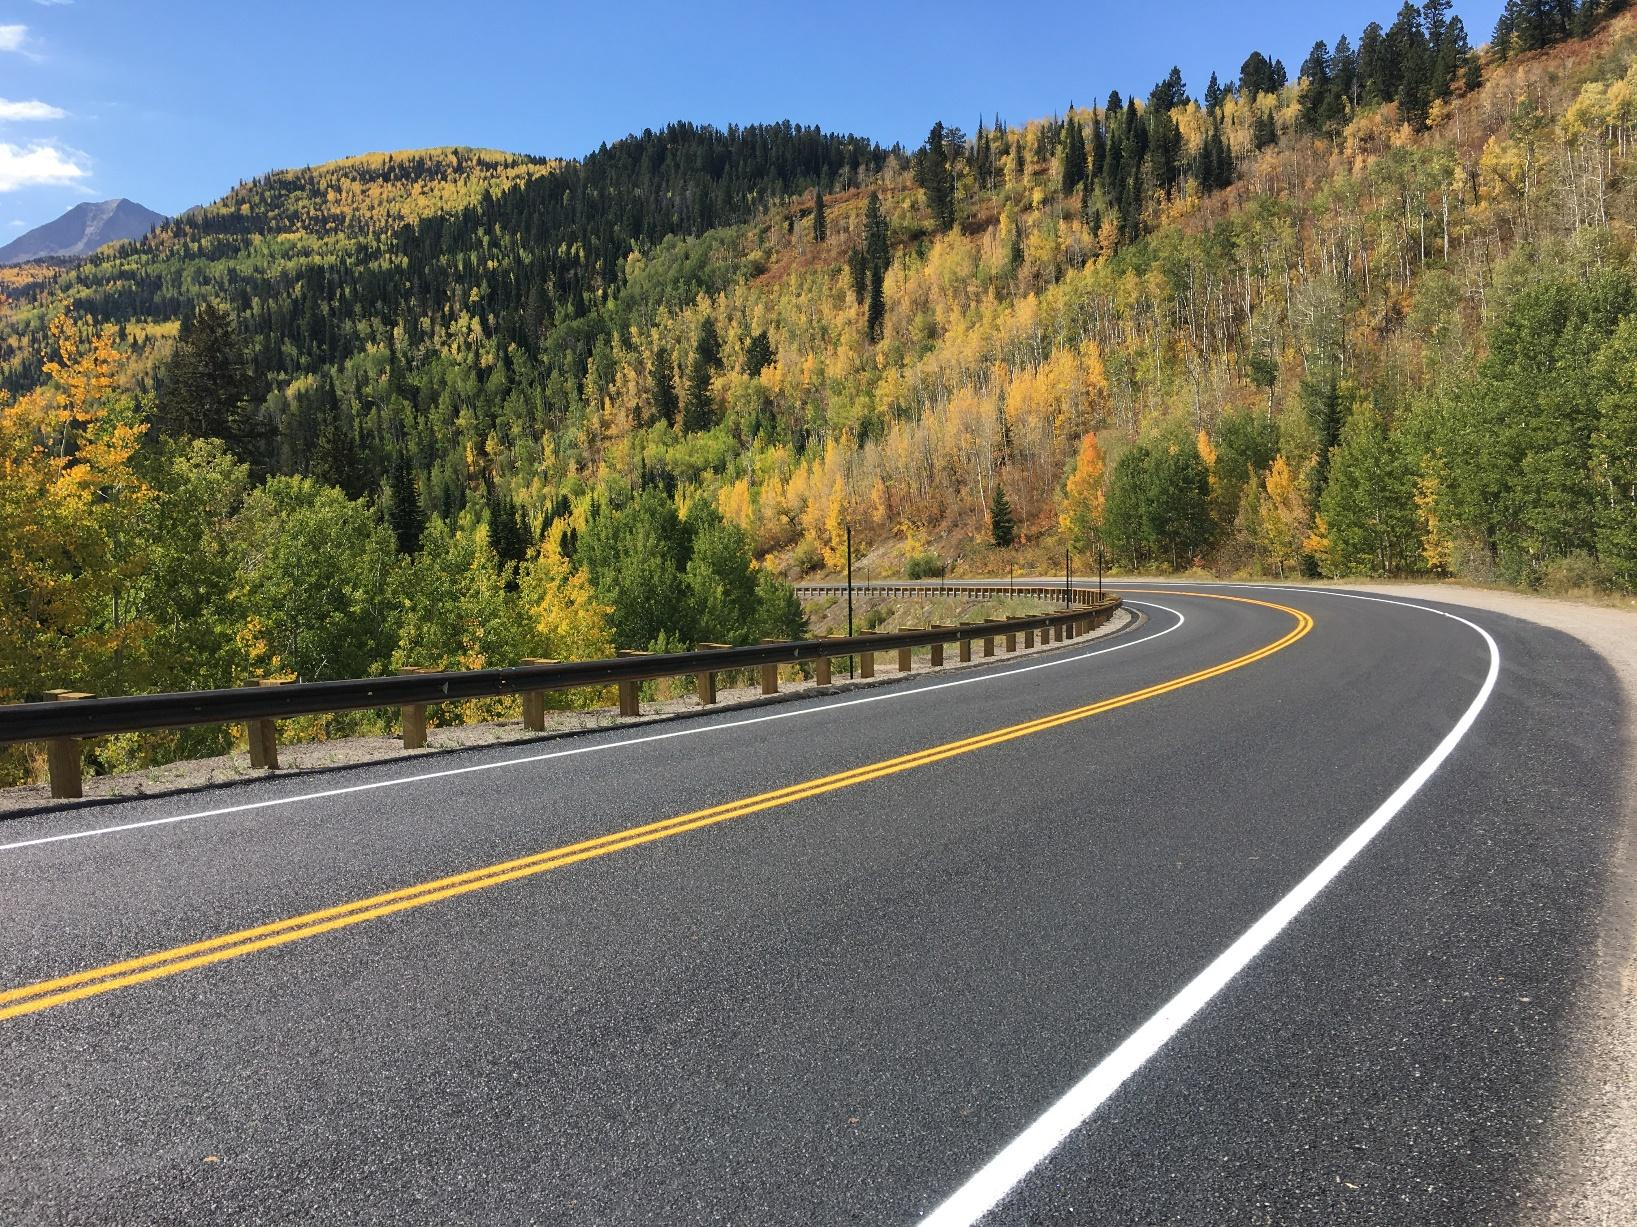 CO 133 Resurfacing from McClure Pass to Redstone